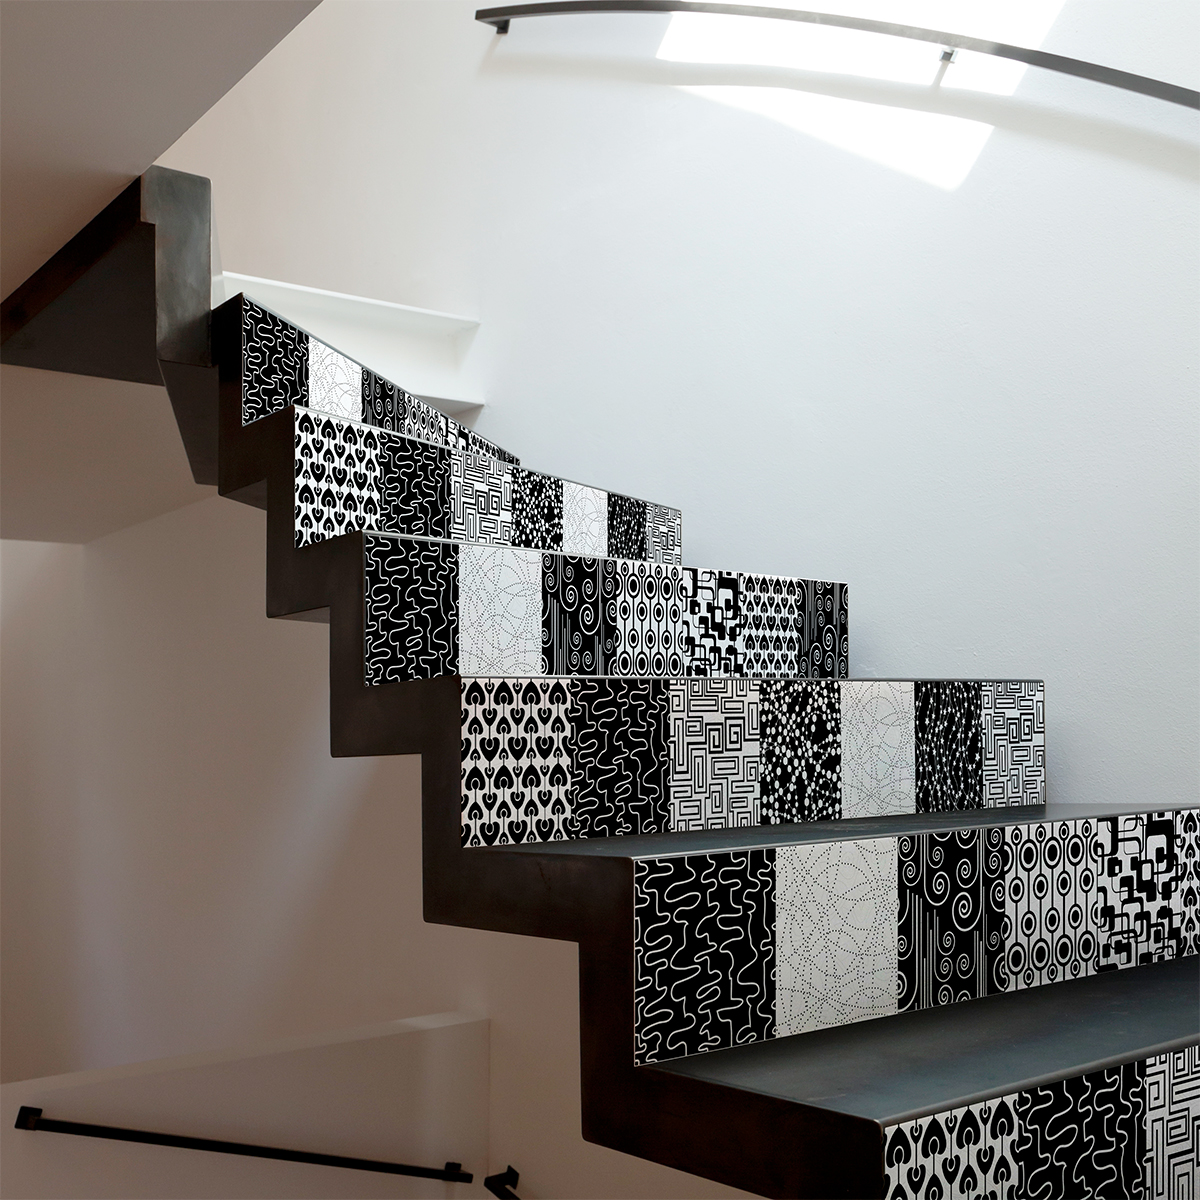 Stickers escalier carreaux de ciment meja x 2 ambiance sticker col stairs ros b099 stickers - Escalier carreaux de ciment ...